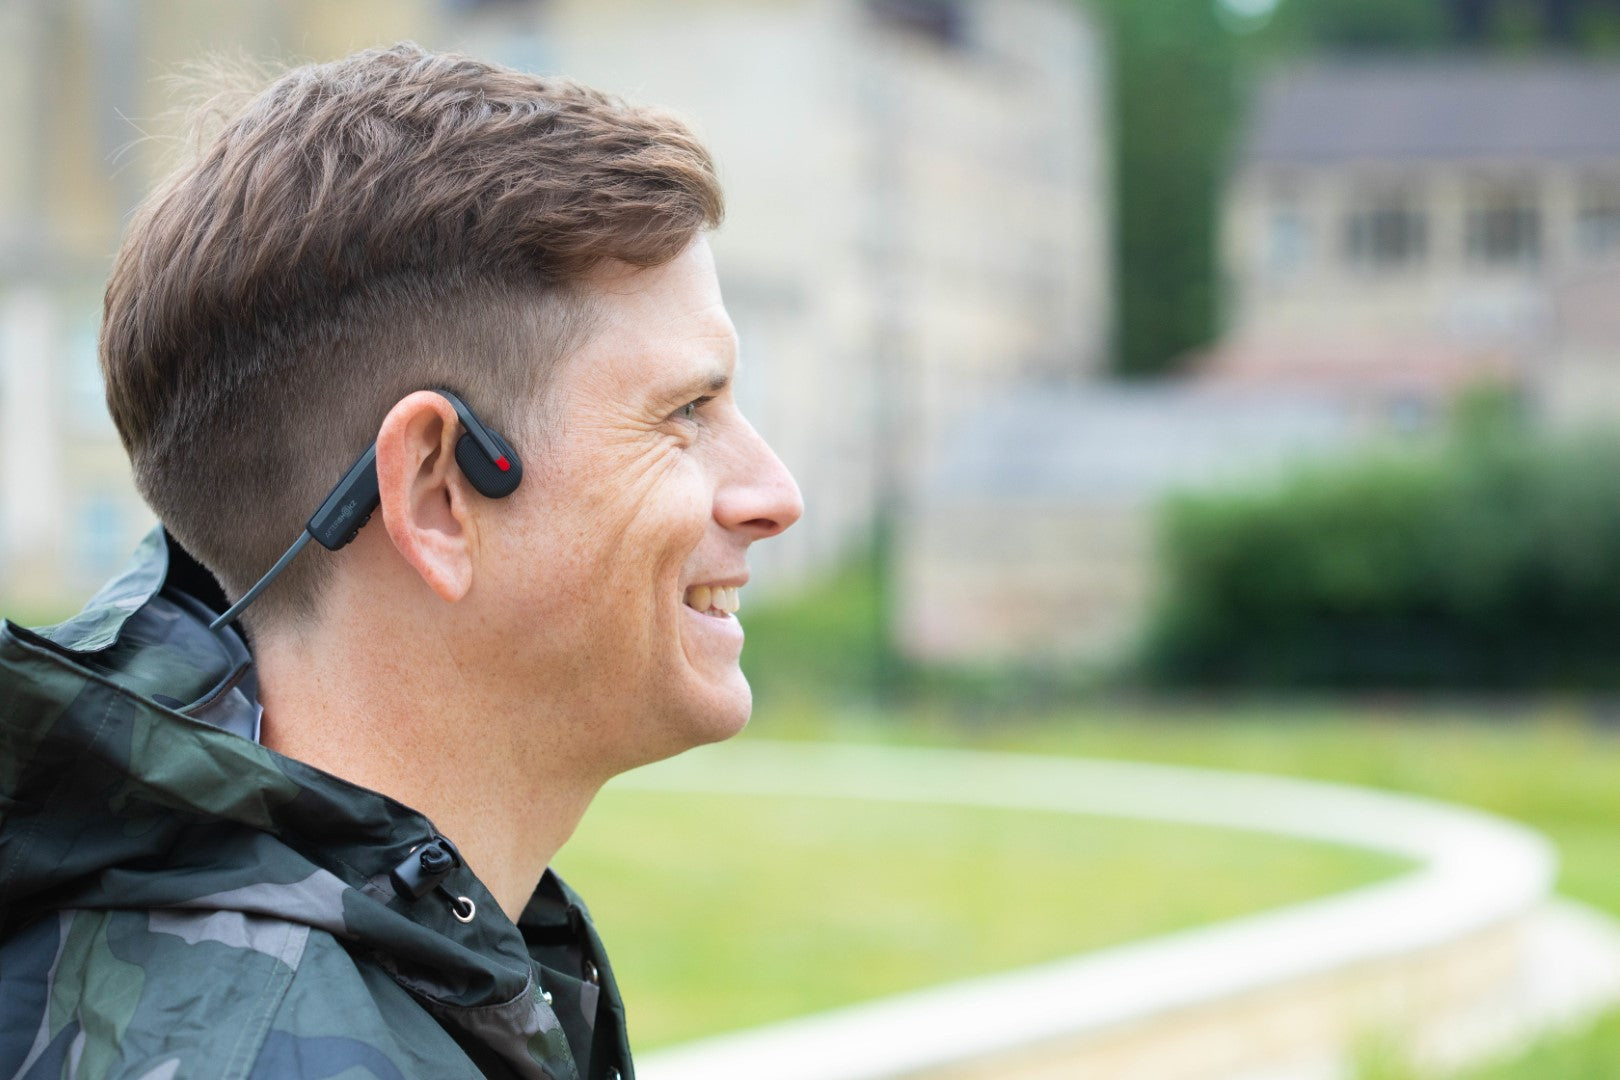 man wearing OPENMOVE bone conduction headphones by Aeropex a great way to listen to music on your bike